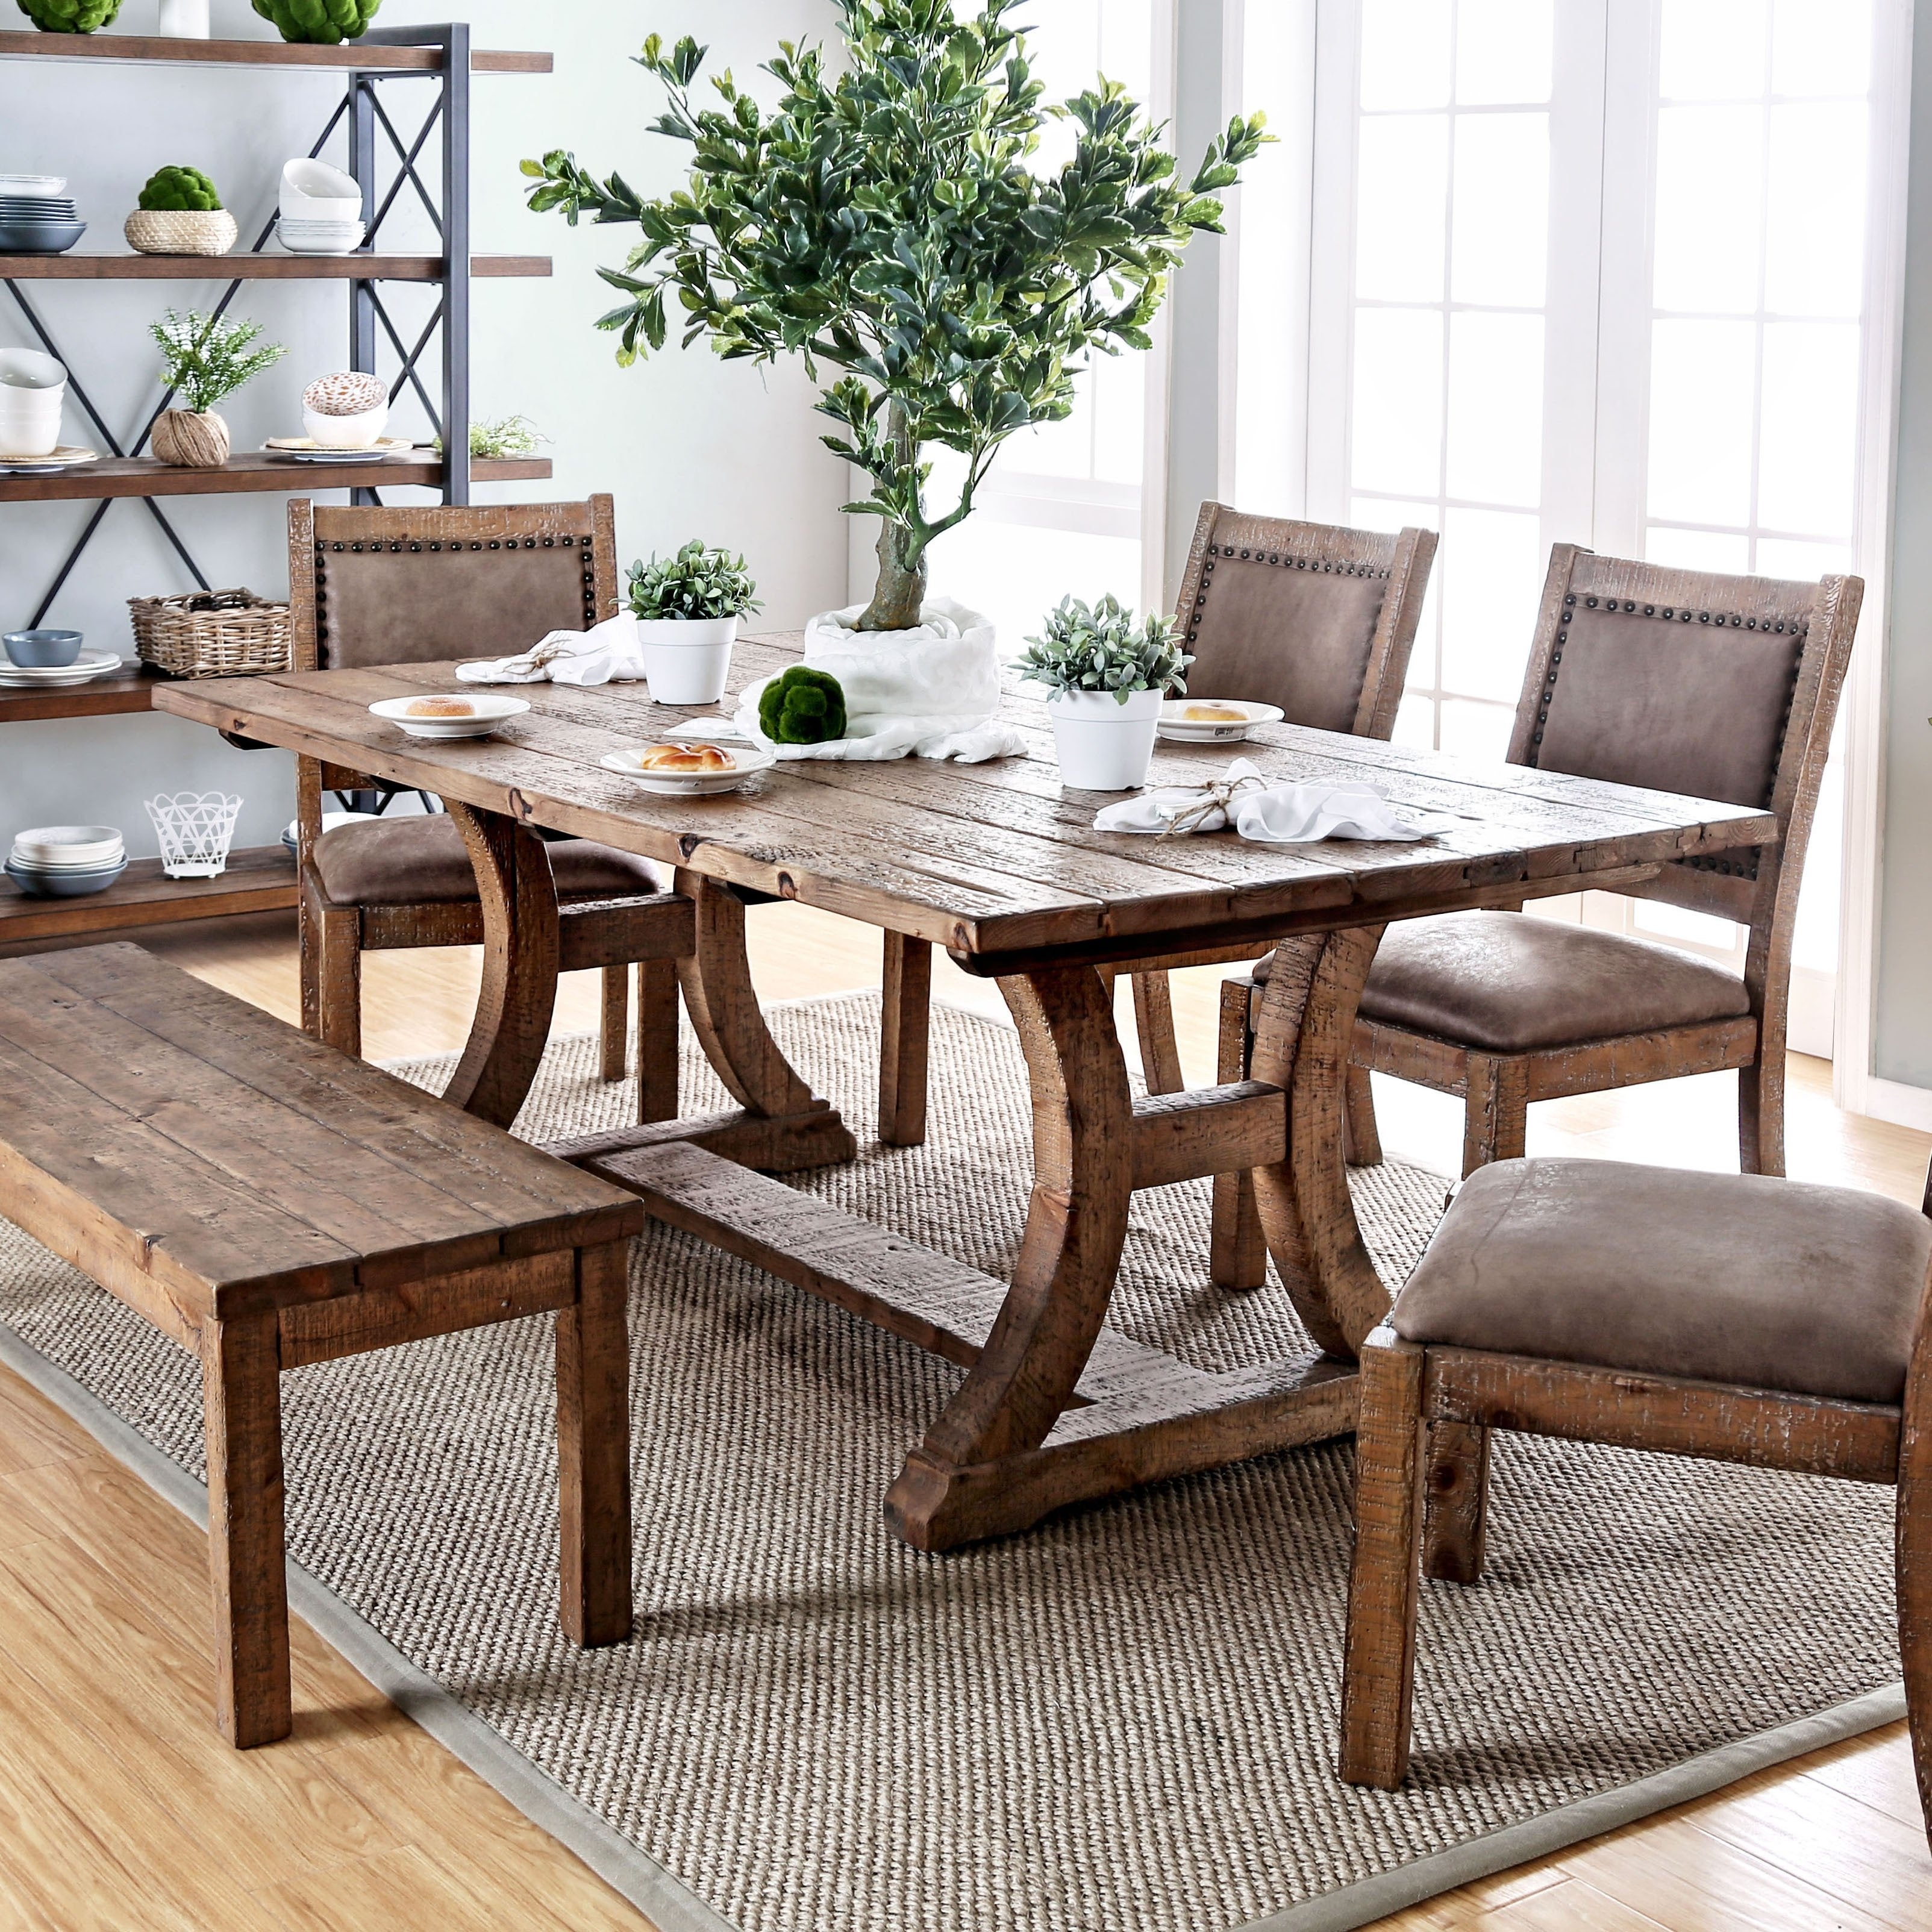 Furniture Of America Sail Rustic Pine Solid Wood Dining Table On Sale Overstock 11149919 96 Inch